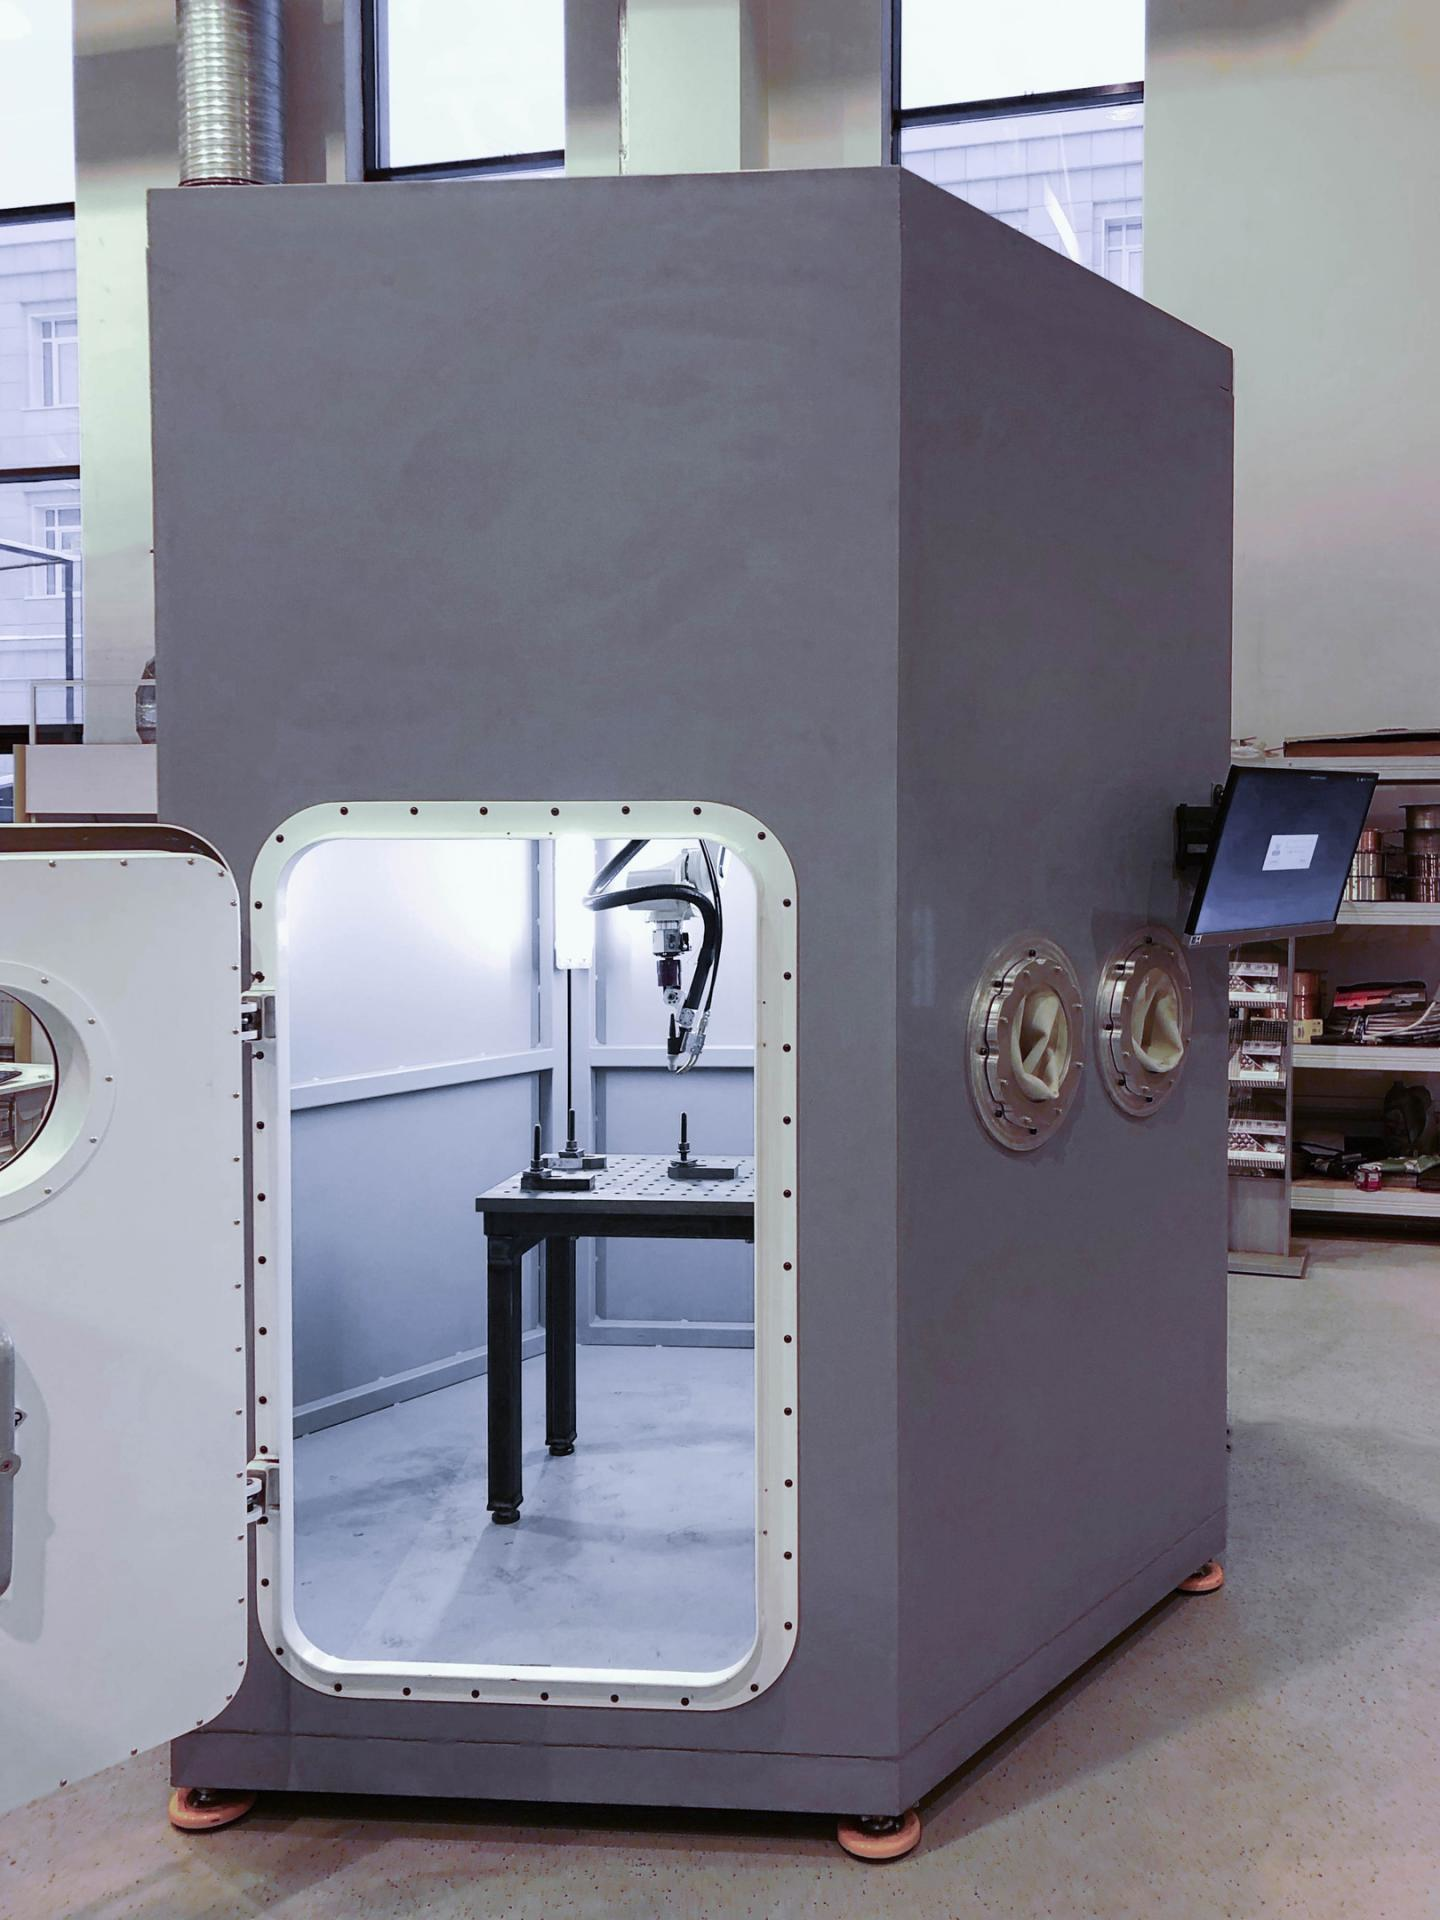 3D printer for high-speed printing of titanium structures and in-situ synthesis of alloys.